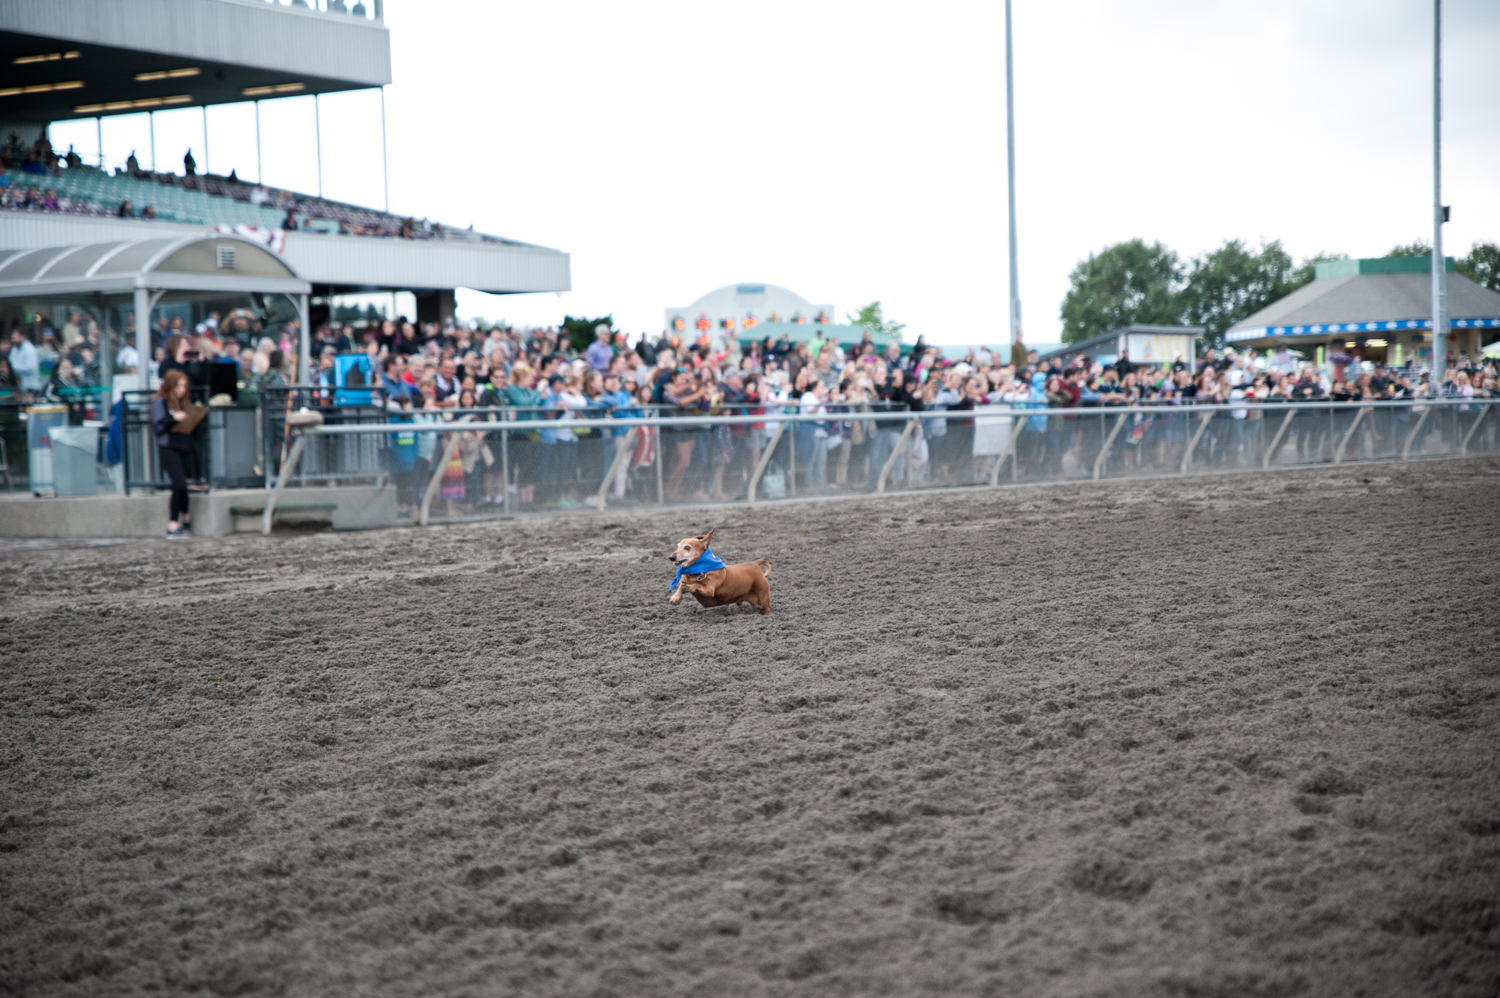 Wiener dogs (and wannabes!) took the track at Emerald Downs for the annual Wiener Dog Races! In front of hundreds of people, wiener dogs and other dogs under 20 pounds sprinted out of the gate and towards their owners at the finish line. The smallest, but mightiest race we've seen at the track in a while! July 7 2019. (Elizabeth Crook / Seattle Refined)